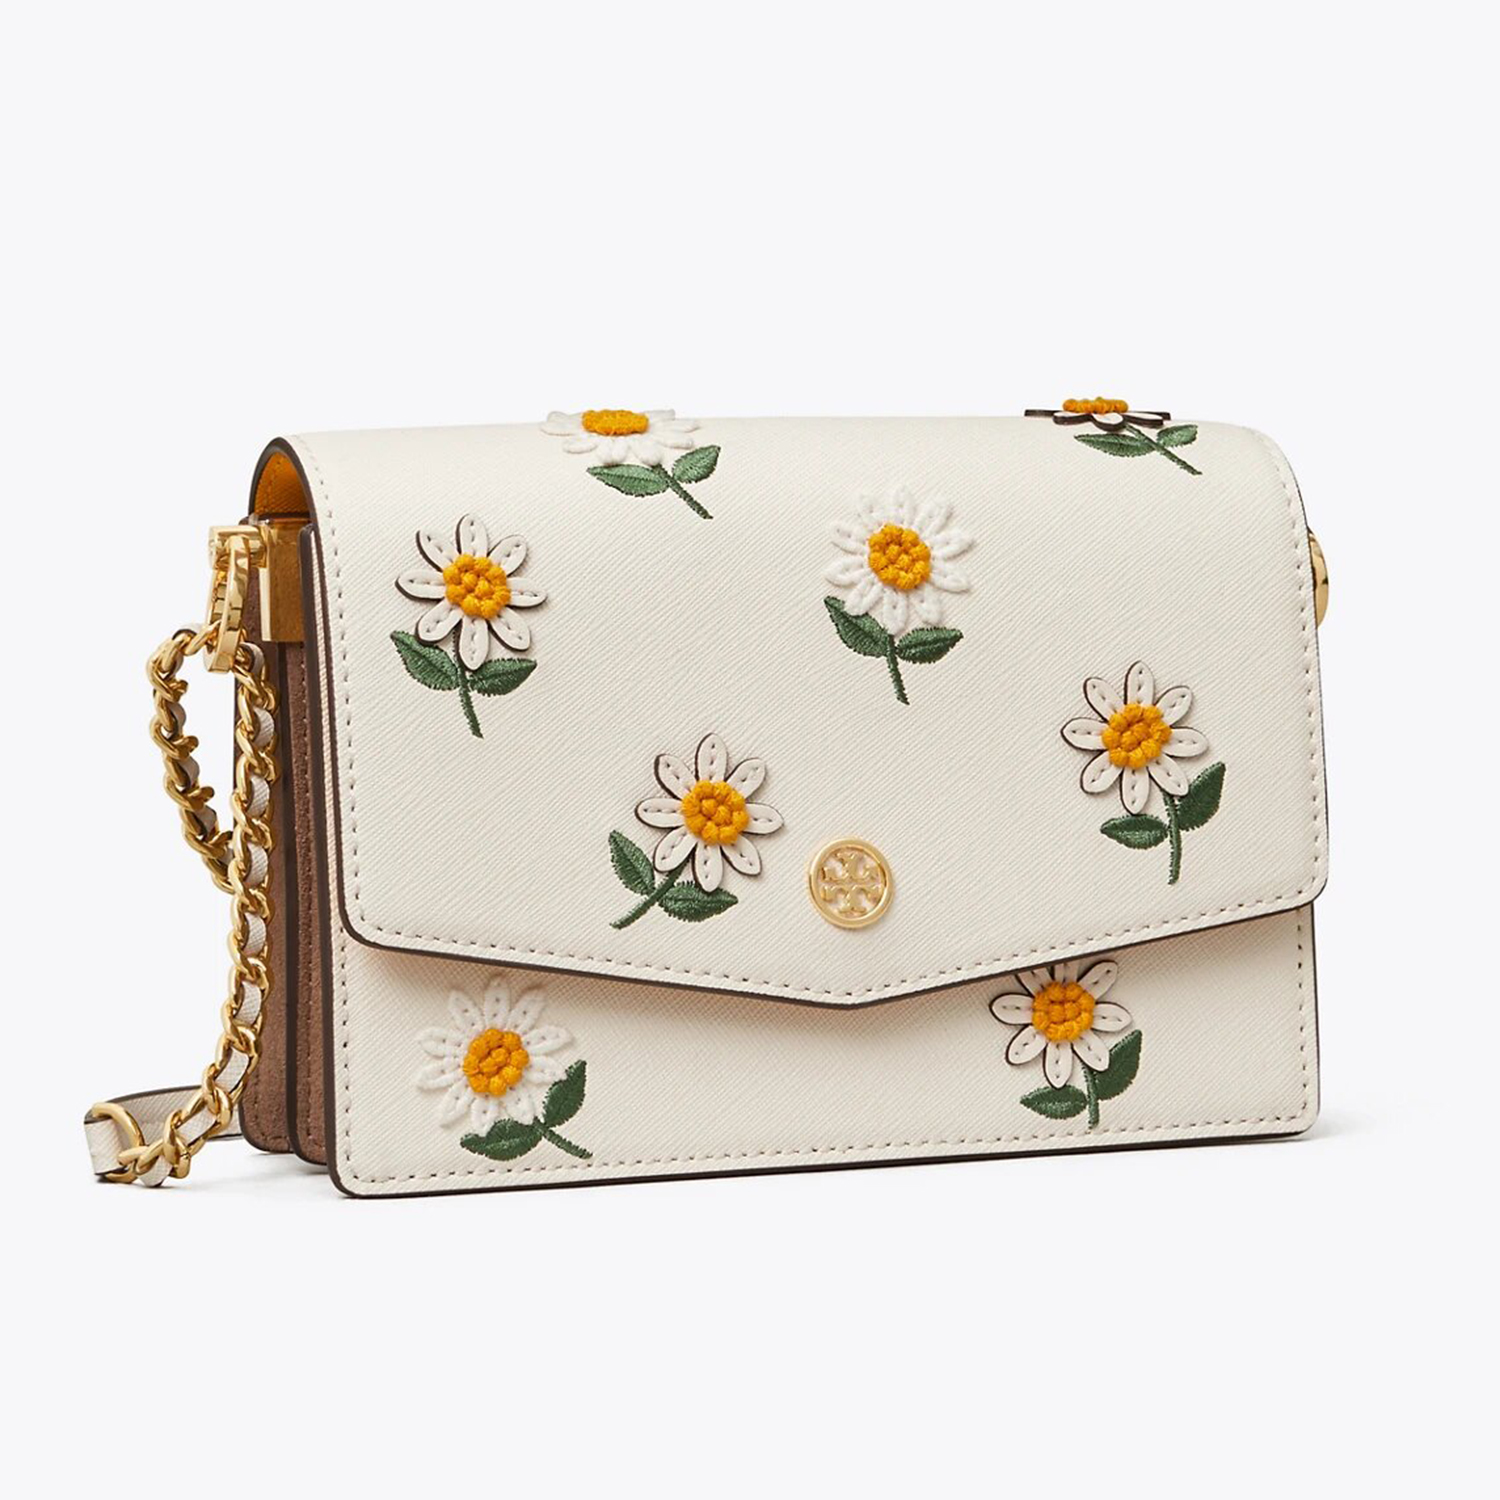 Tory Burch Robinson Embroidered Mini Shoulder Bag